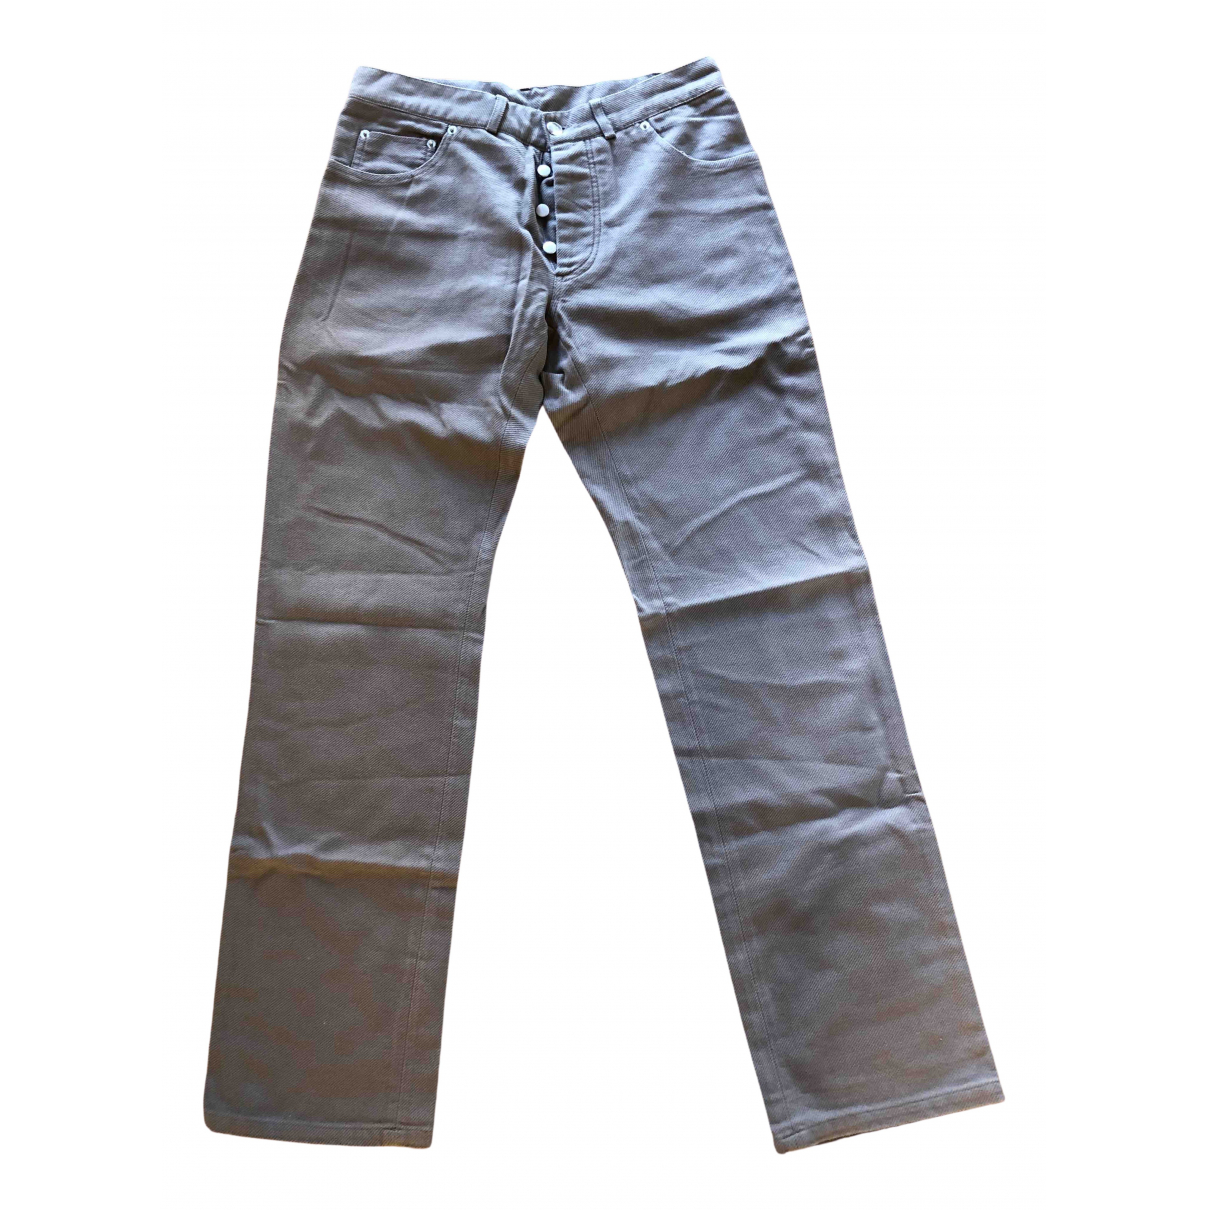 Daniele Alessandrini \N Beige Denim - Jeans Trousers for Men 44 IT